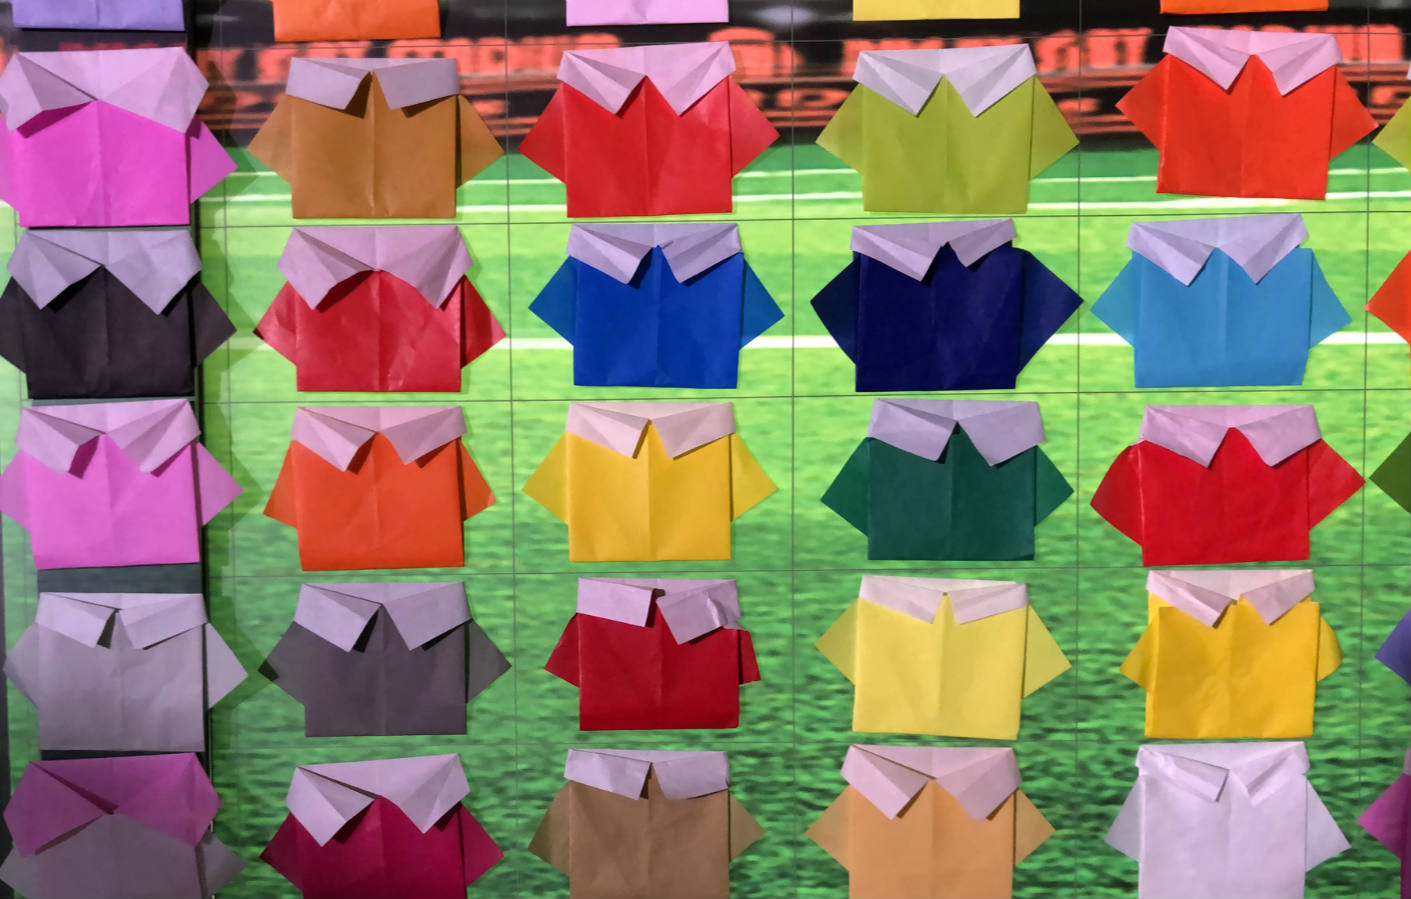 Largest display of origami shirts